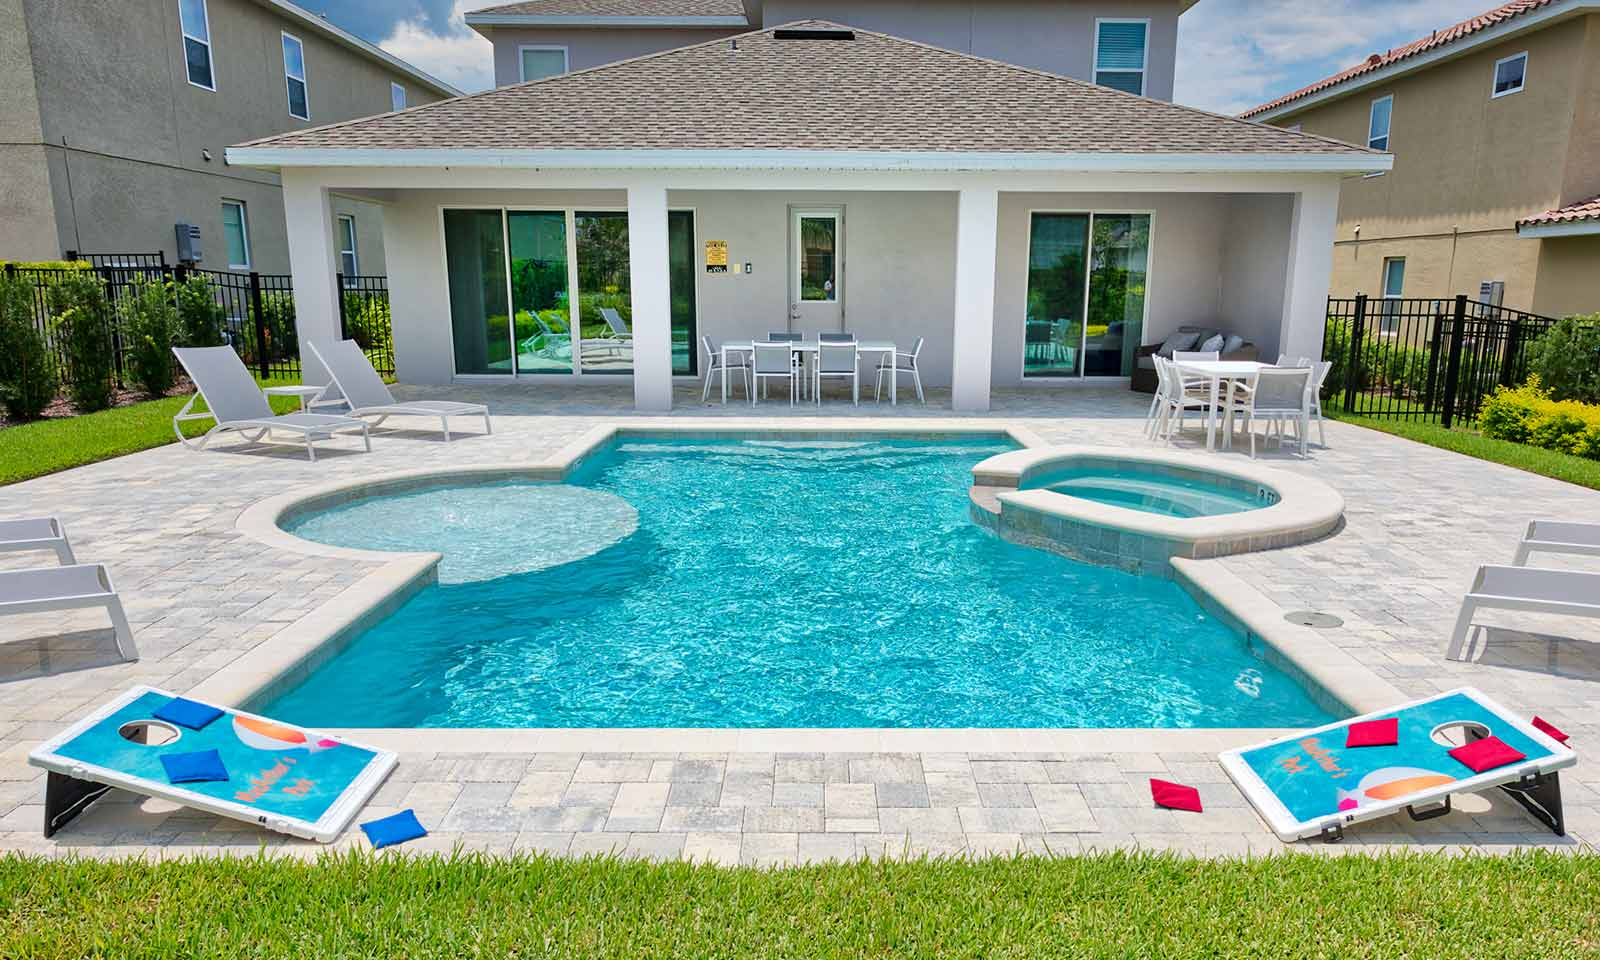 [amenities:private-pool:1] Private Pool